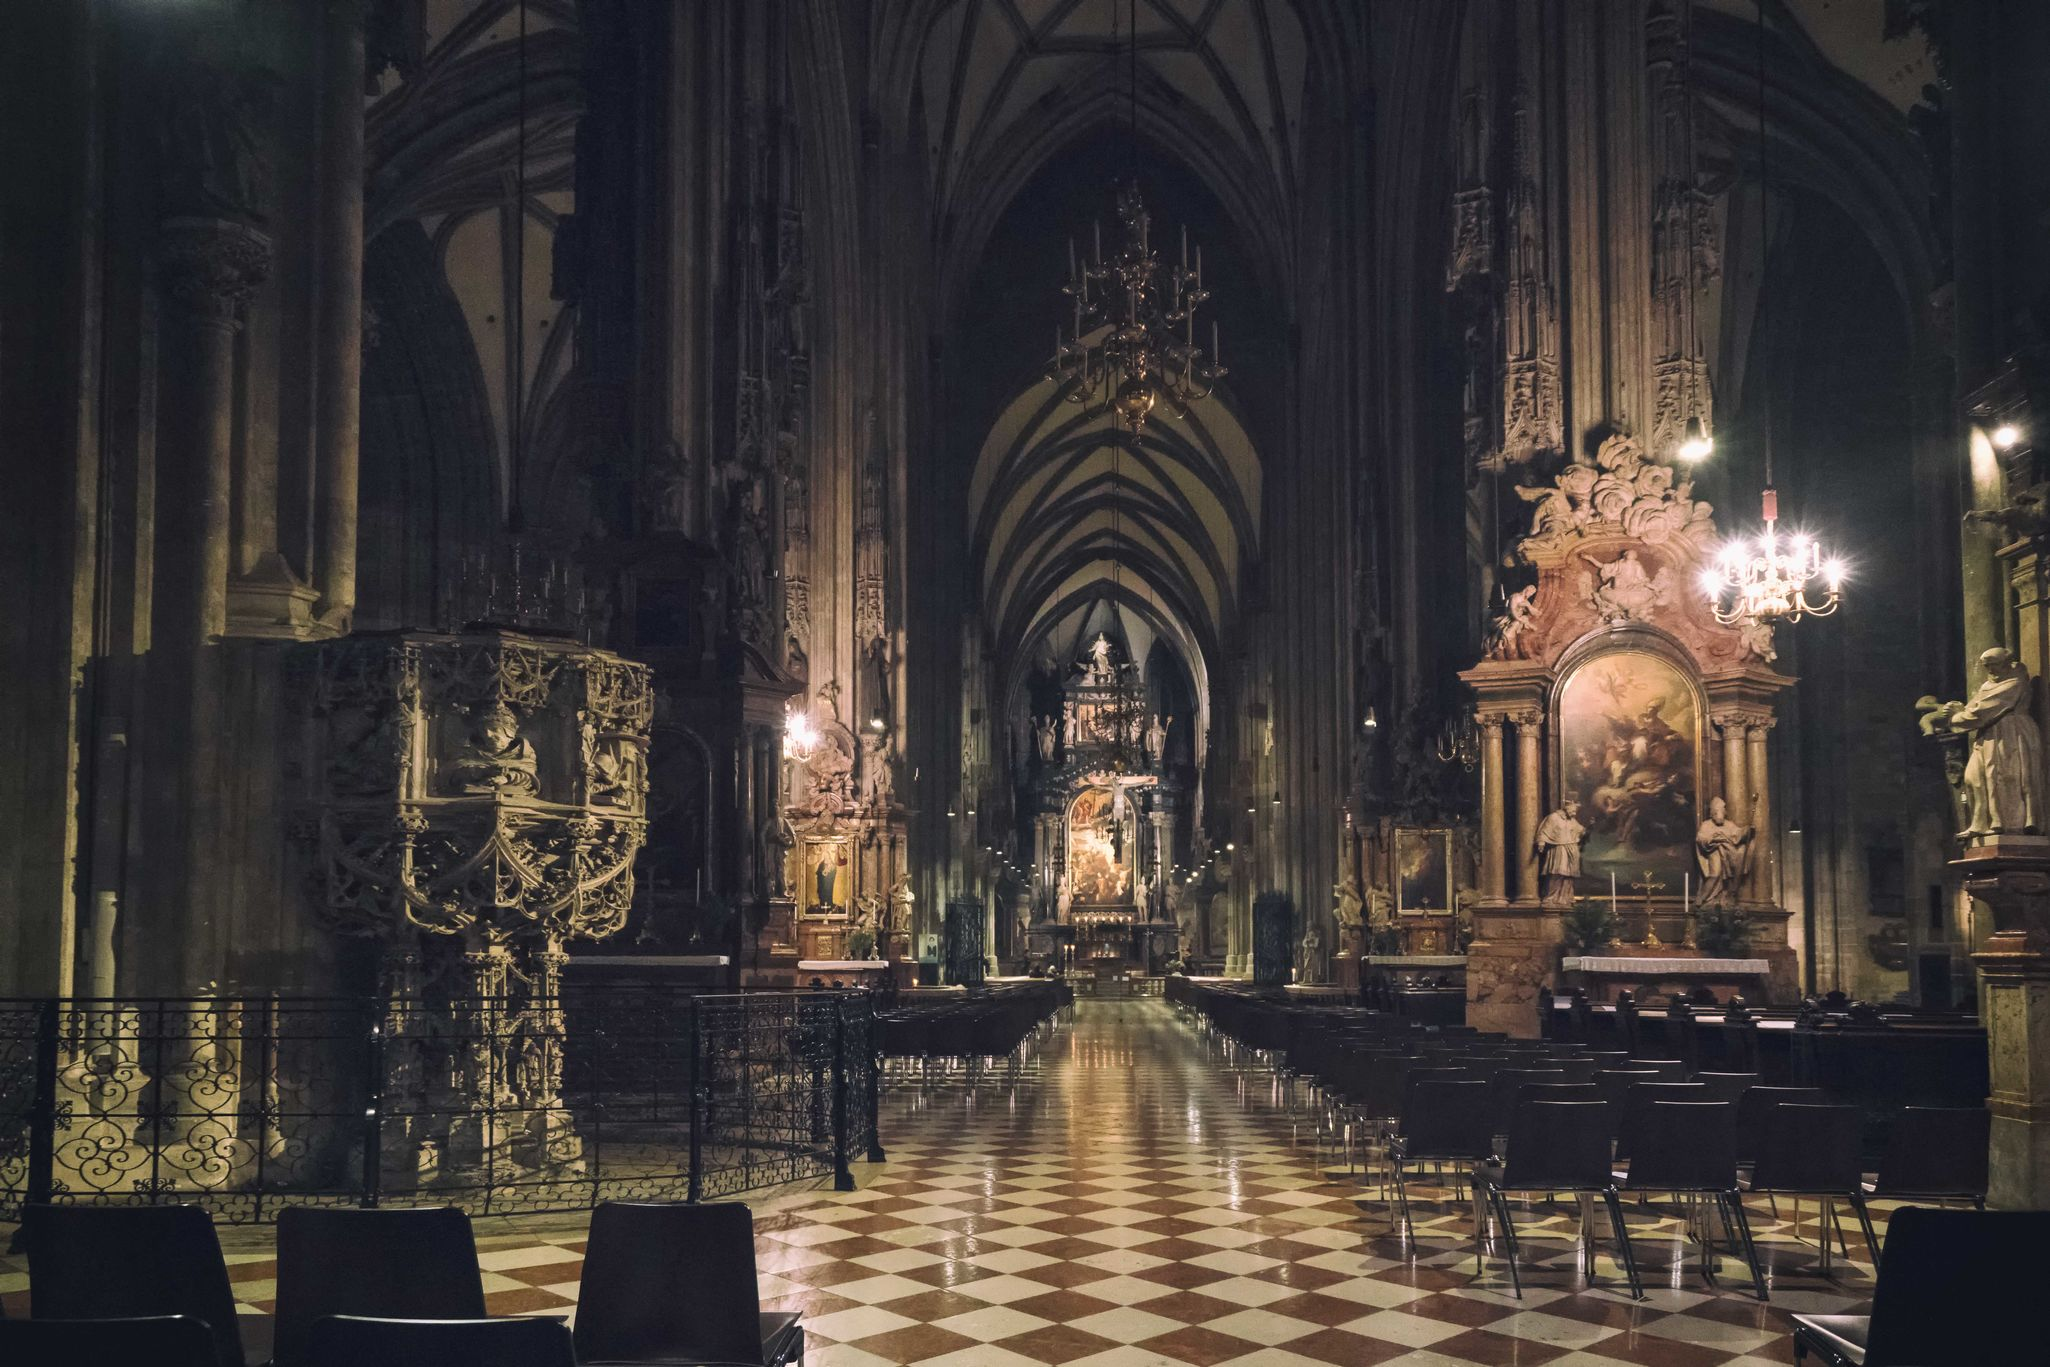 """St. Stephen Cathedral Vienna"" Vienna St. Stephen's Cathedral Church Architecture High ISO Sony A7RII Travel Destinations No People Illuminated Austria In Door Indonesian Photographers Collection Sony A7 Mark Ii Taking Photos Traveling Travel EyeEmNewHere EyeEm Best Shots EyeEm Gallery Wide Angle Traveling Photography"